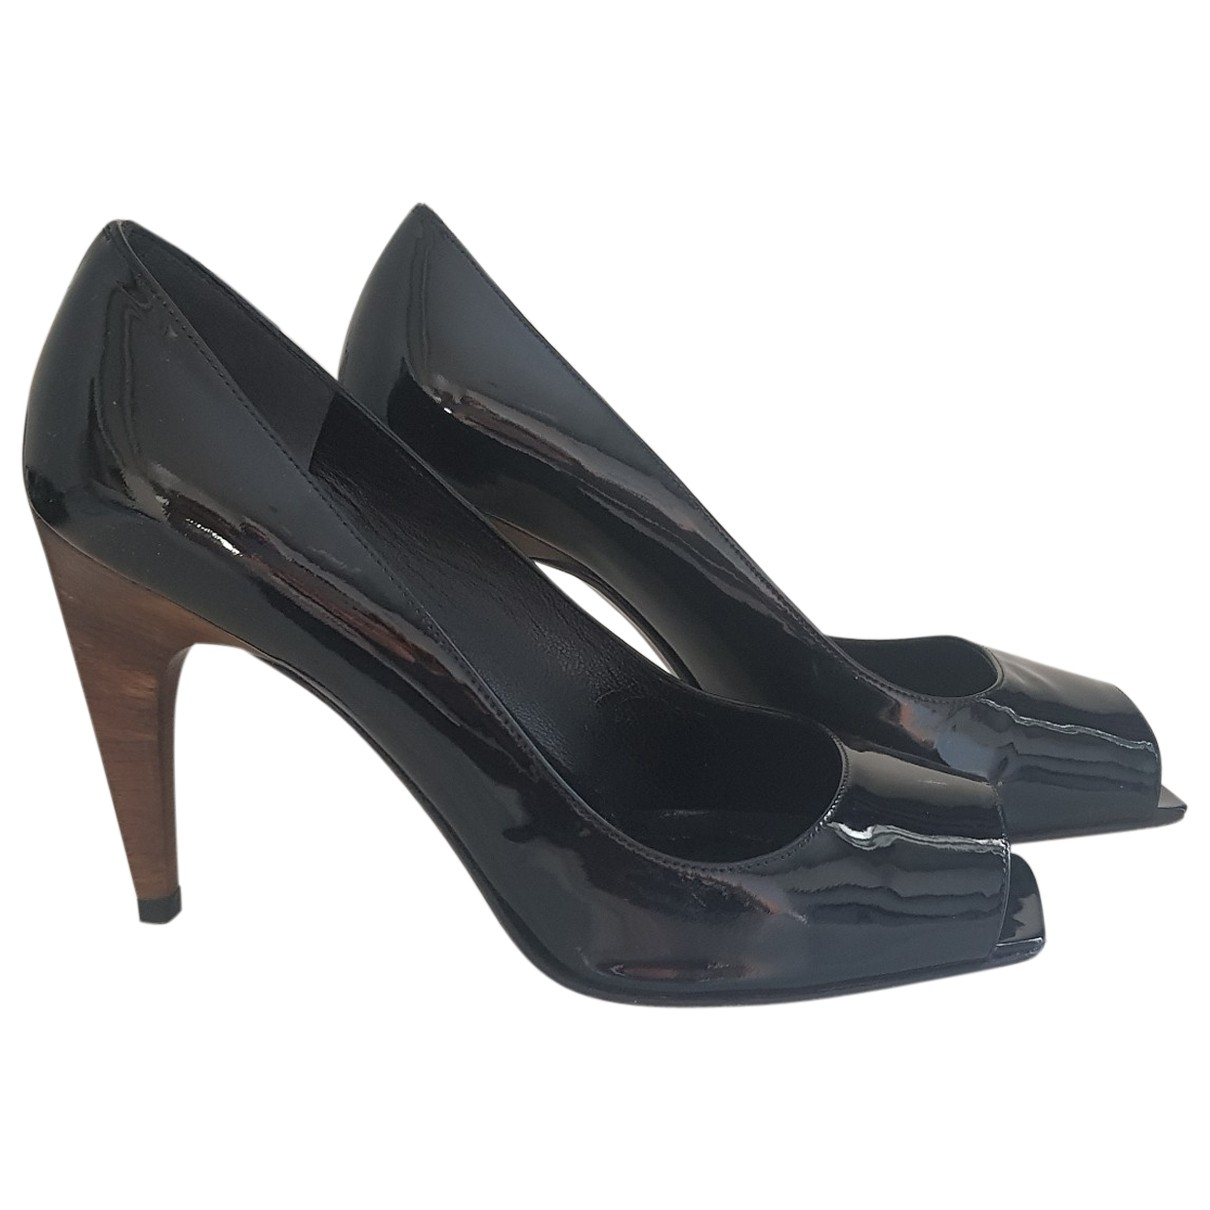 Stuart Weitzman \N Black Patent leather Heels for Women 37.5 EU